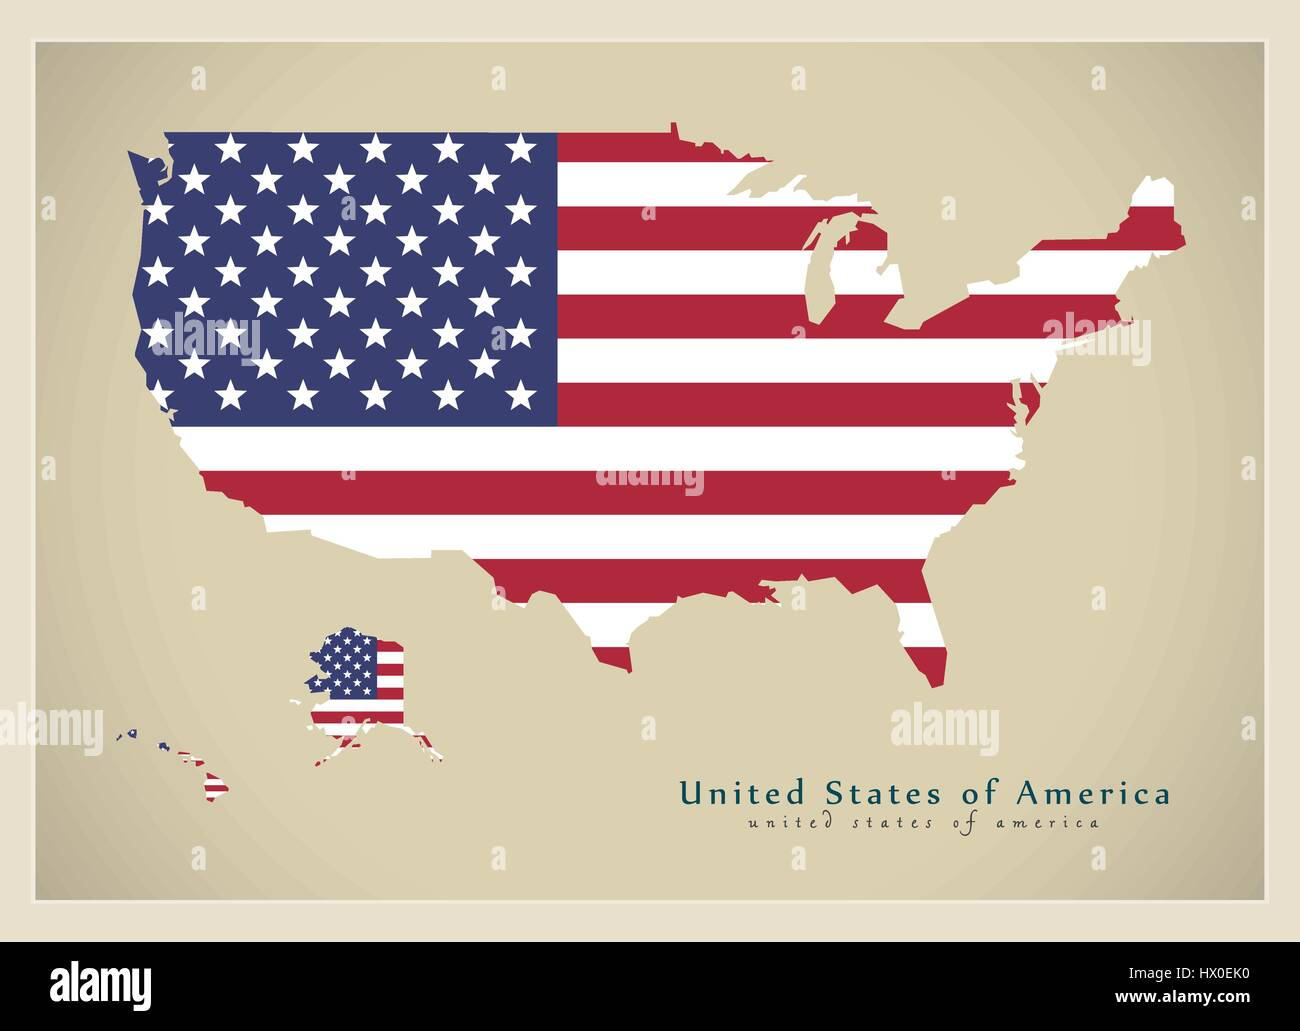 Modern Map - United States of America flag colored USA Stock Vector ...